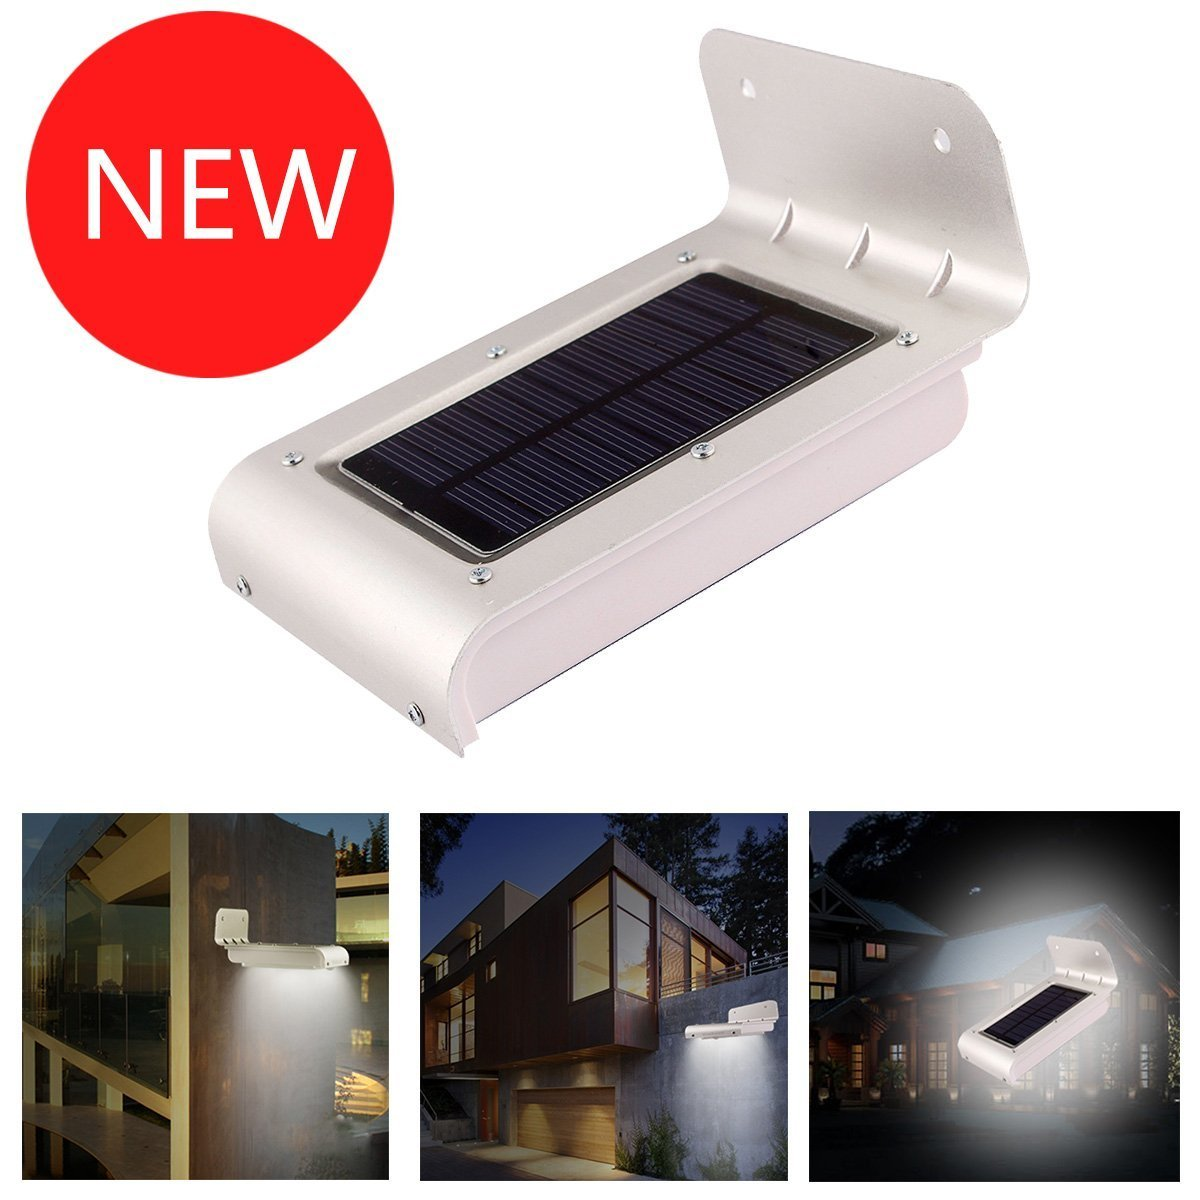 Solar Powered Garden Lights 16 LED Motion Sensor Detector Outdoor Security  Light Waterproof Home Yard Lamp (2015 Latest Version)     Amazon.com